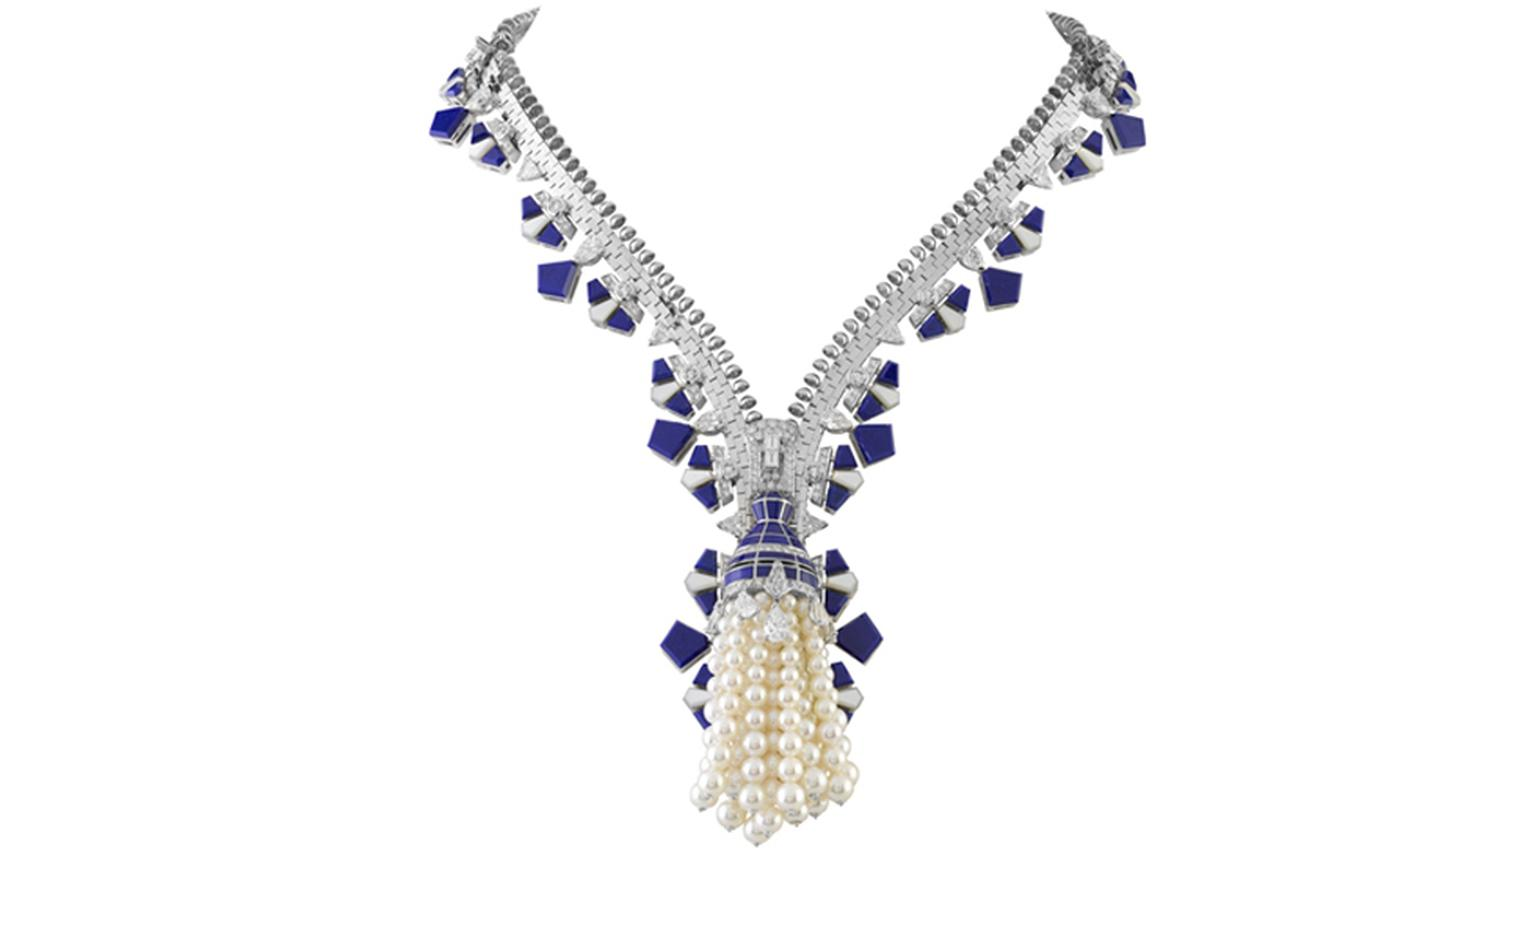 Van Cleef & Arpels Zip necklace in white gold set with diamonds, white cultured pearls, white mother-of-pearl and lapis lazuli. POA